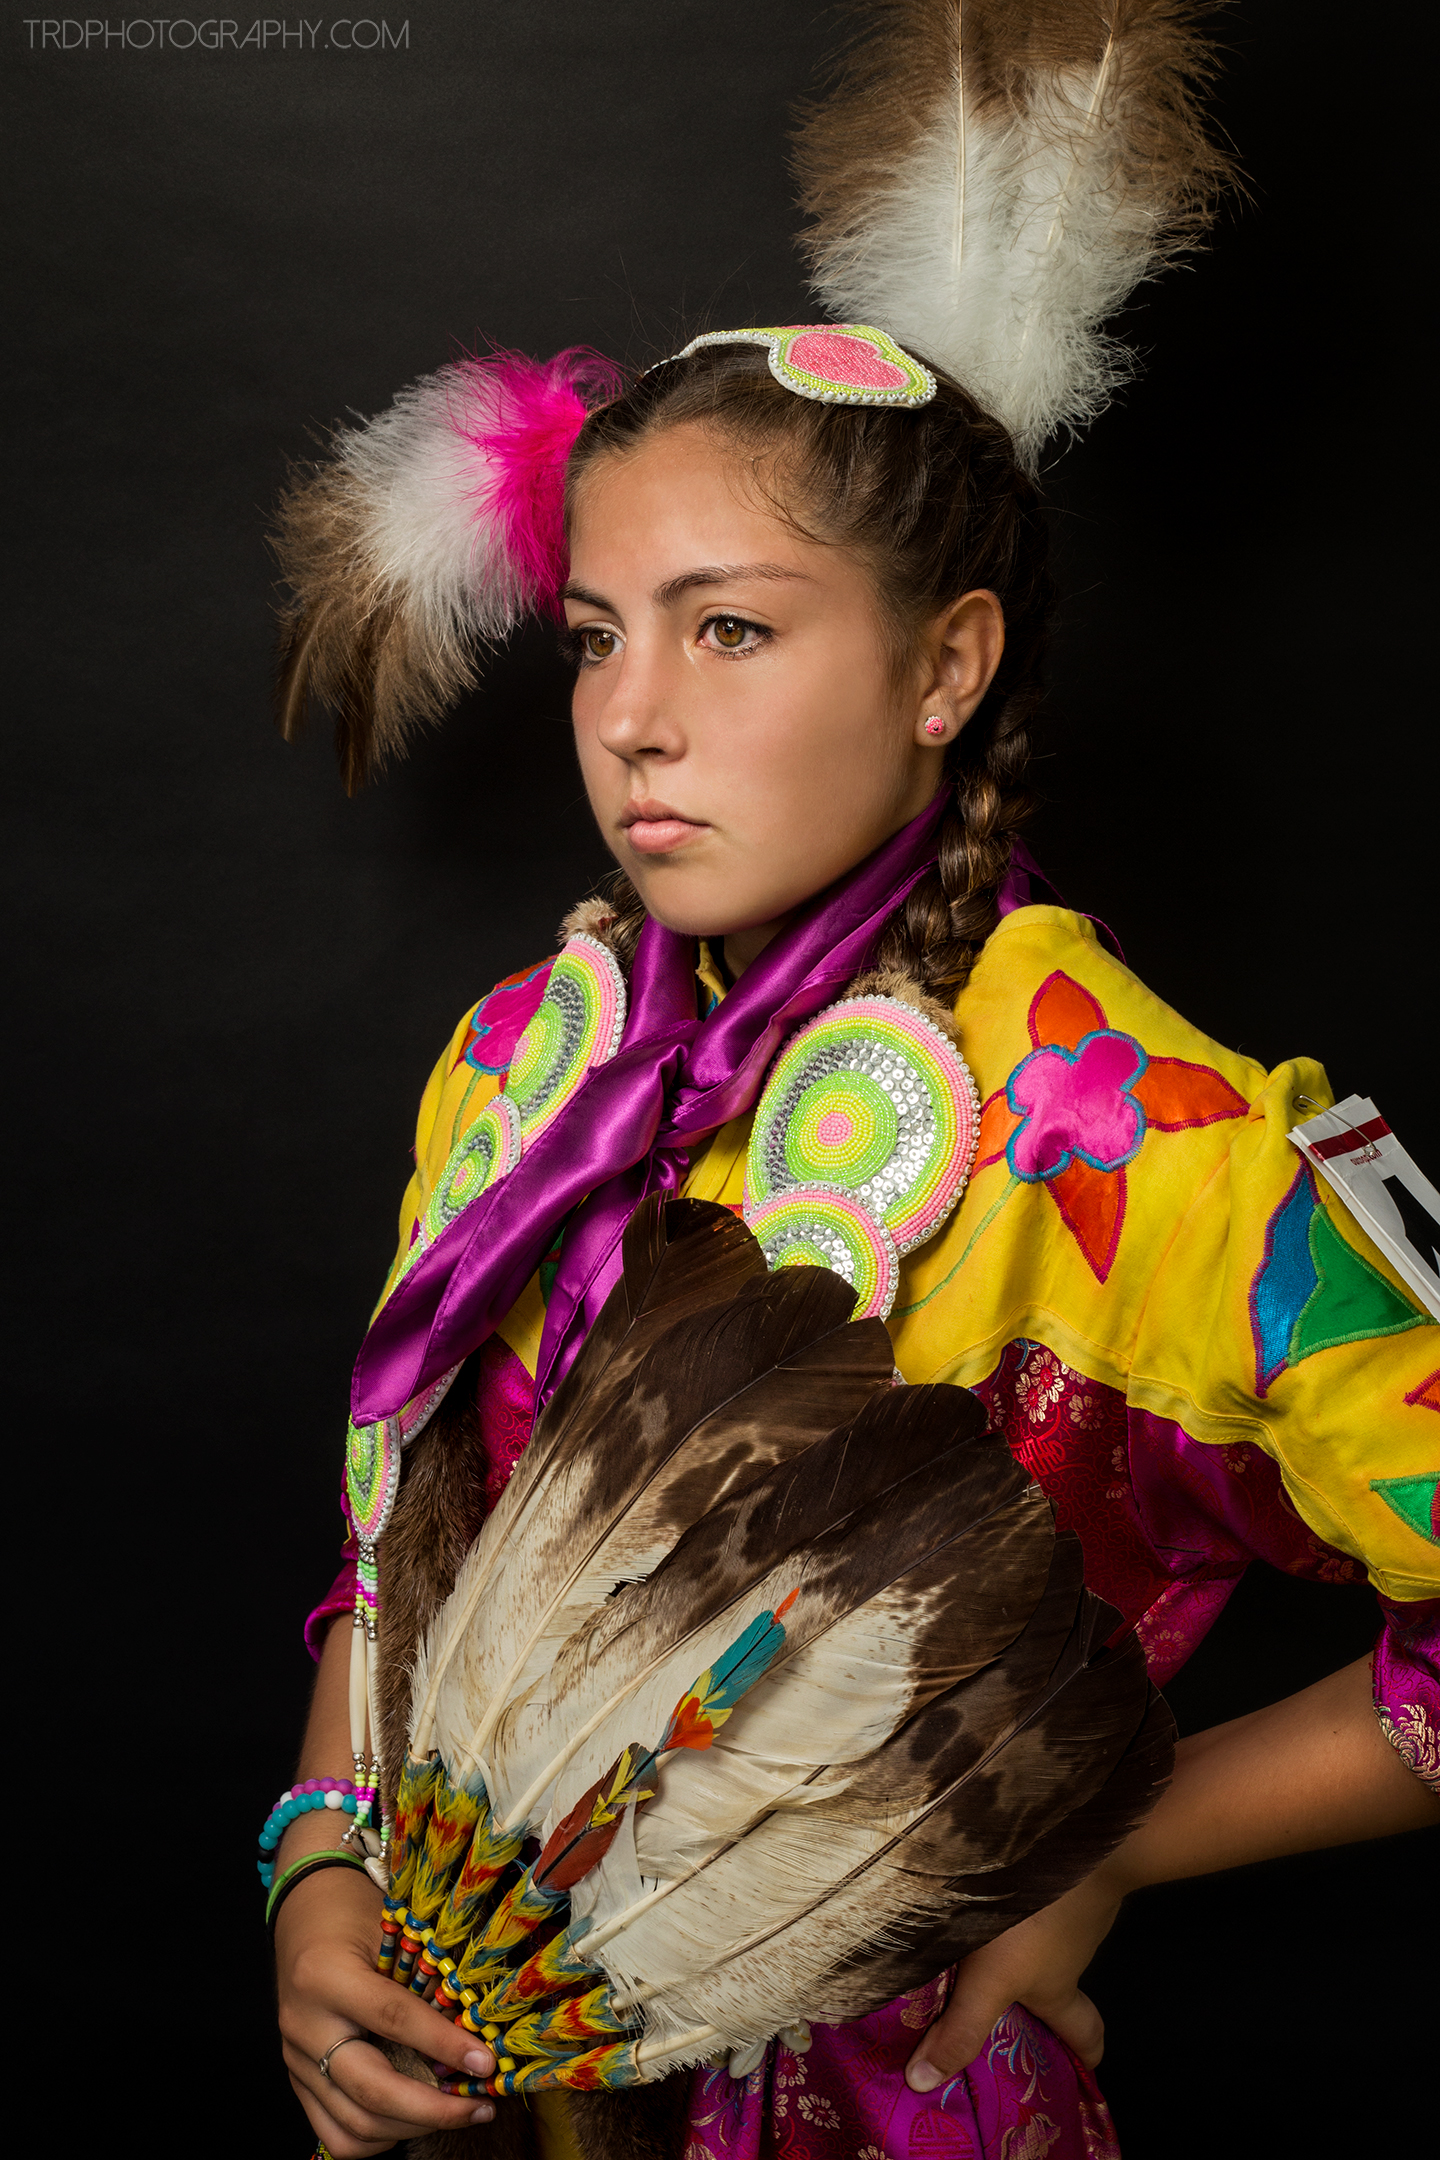 Native American Portrait Series - Aspen Yahola - TRD Photography